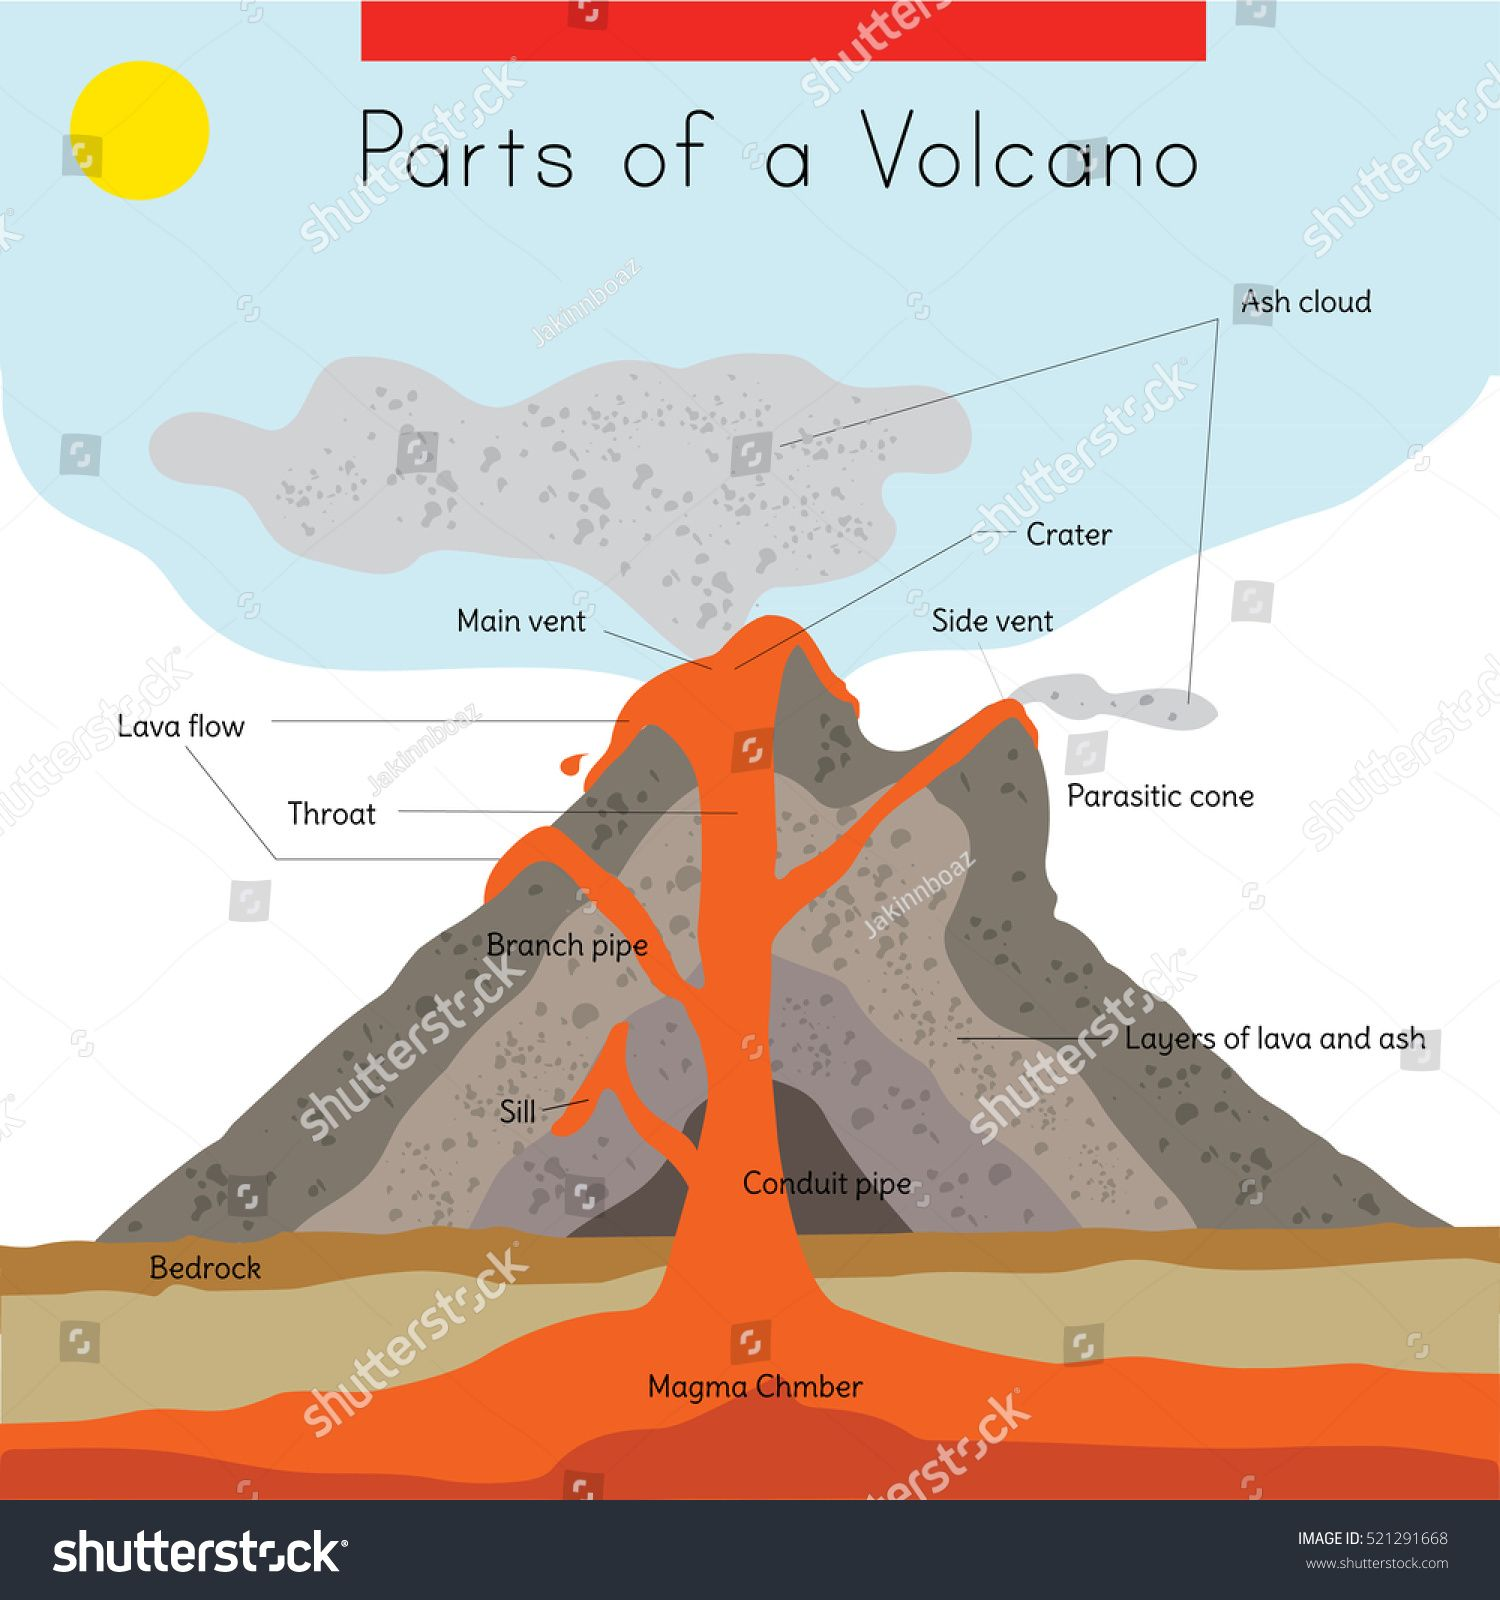 a diagram of the interior and exterior parts of a volcano [ 1500 x 1600 Pixel ]